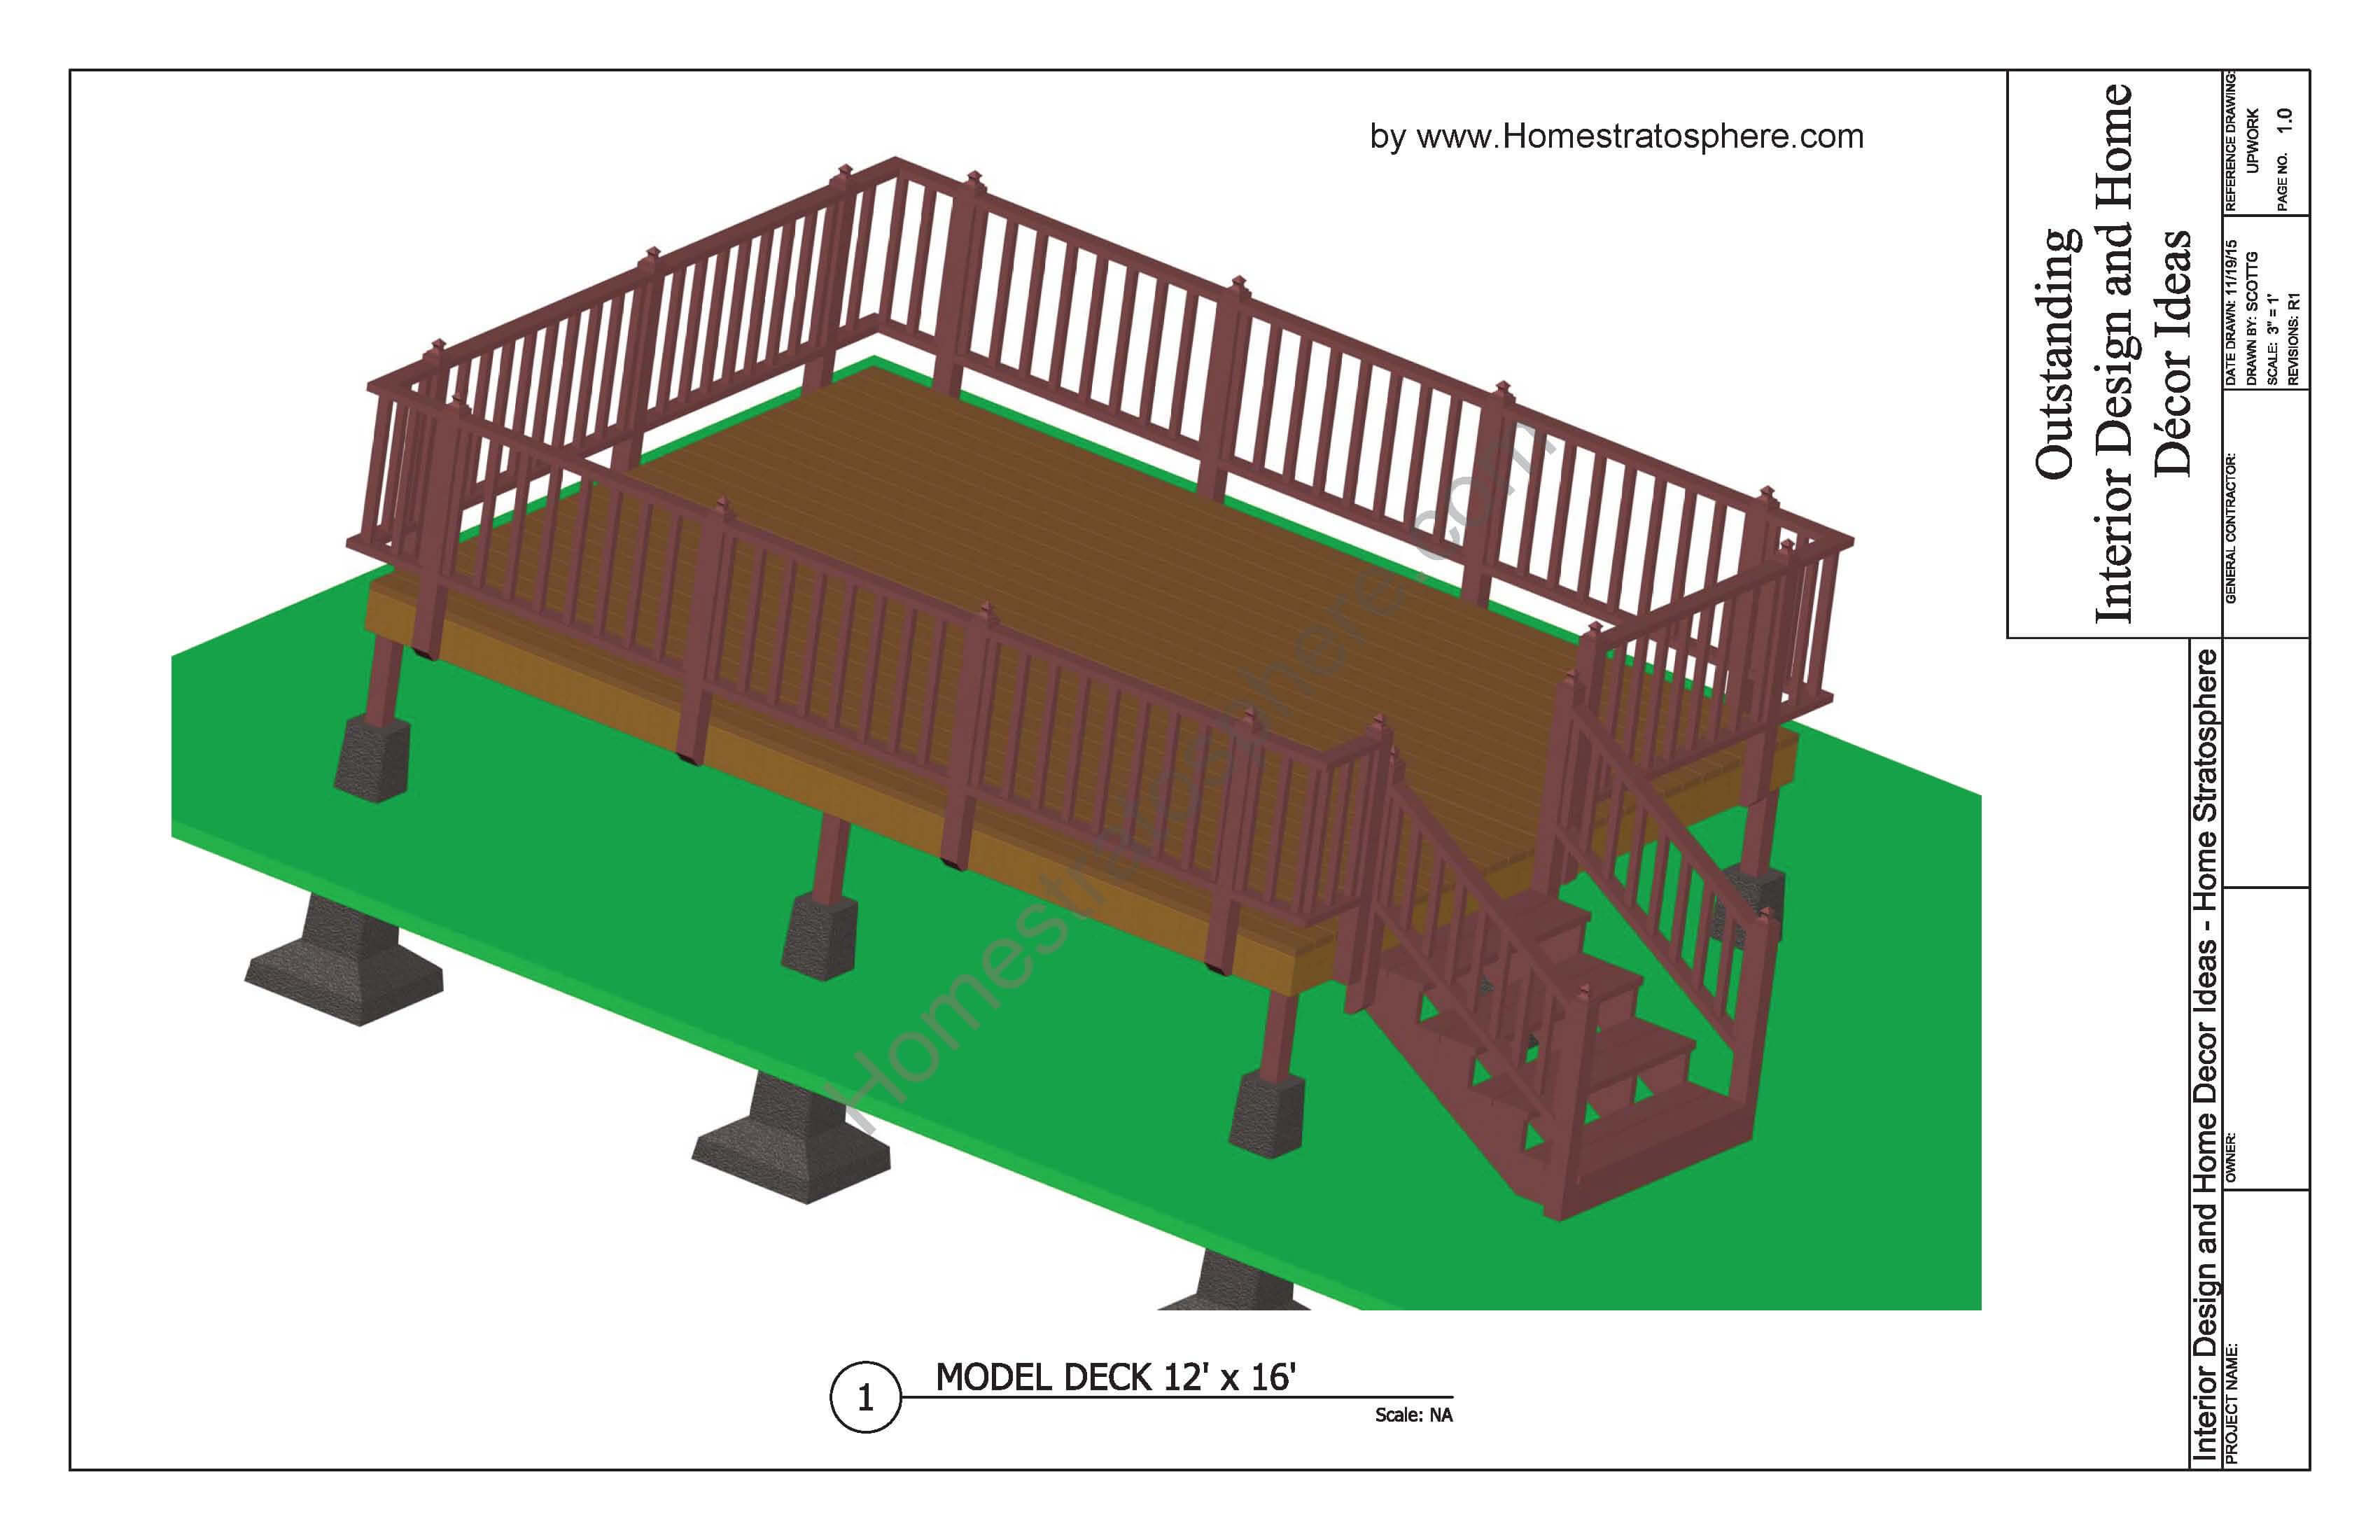 Free deck plans and blueprints online with pdf downloads 12x16 deck plan malvernweather Image collections